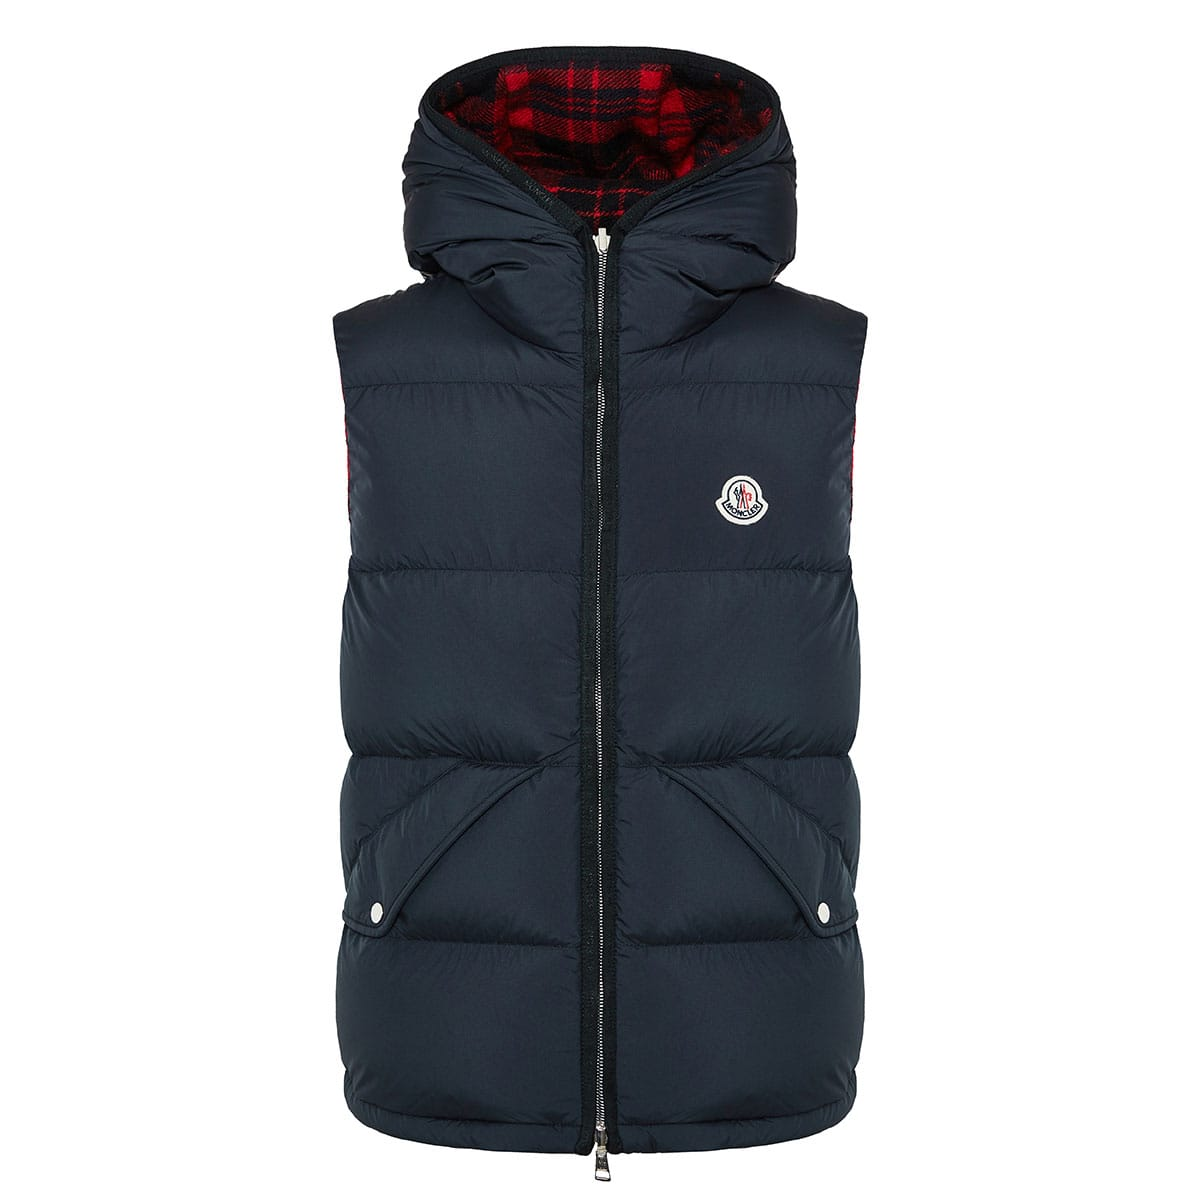 Reversible wool and nylon padded gilet